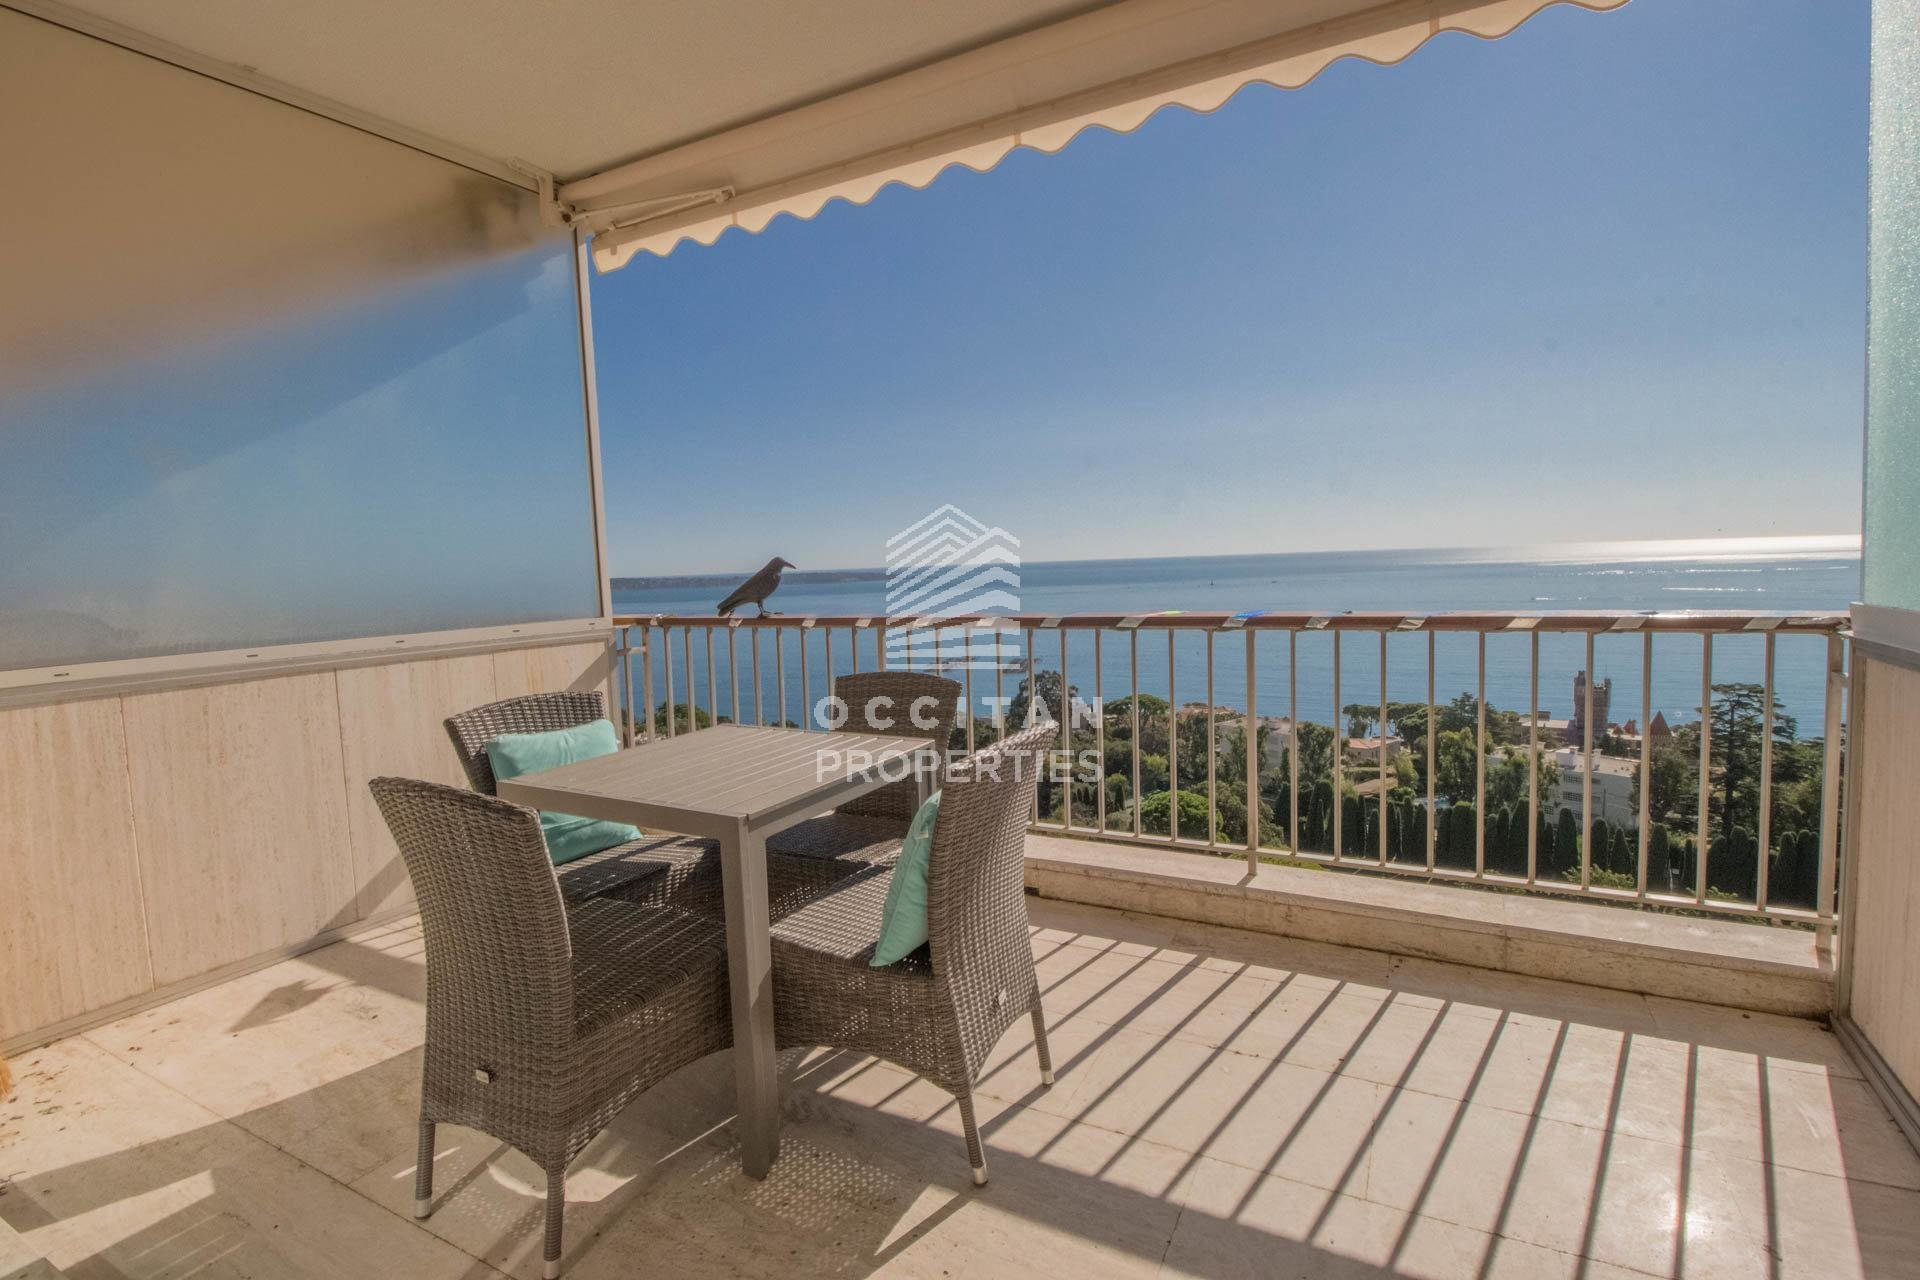 Panoramic sea view - High Floor - High standing - Californie, Cannes